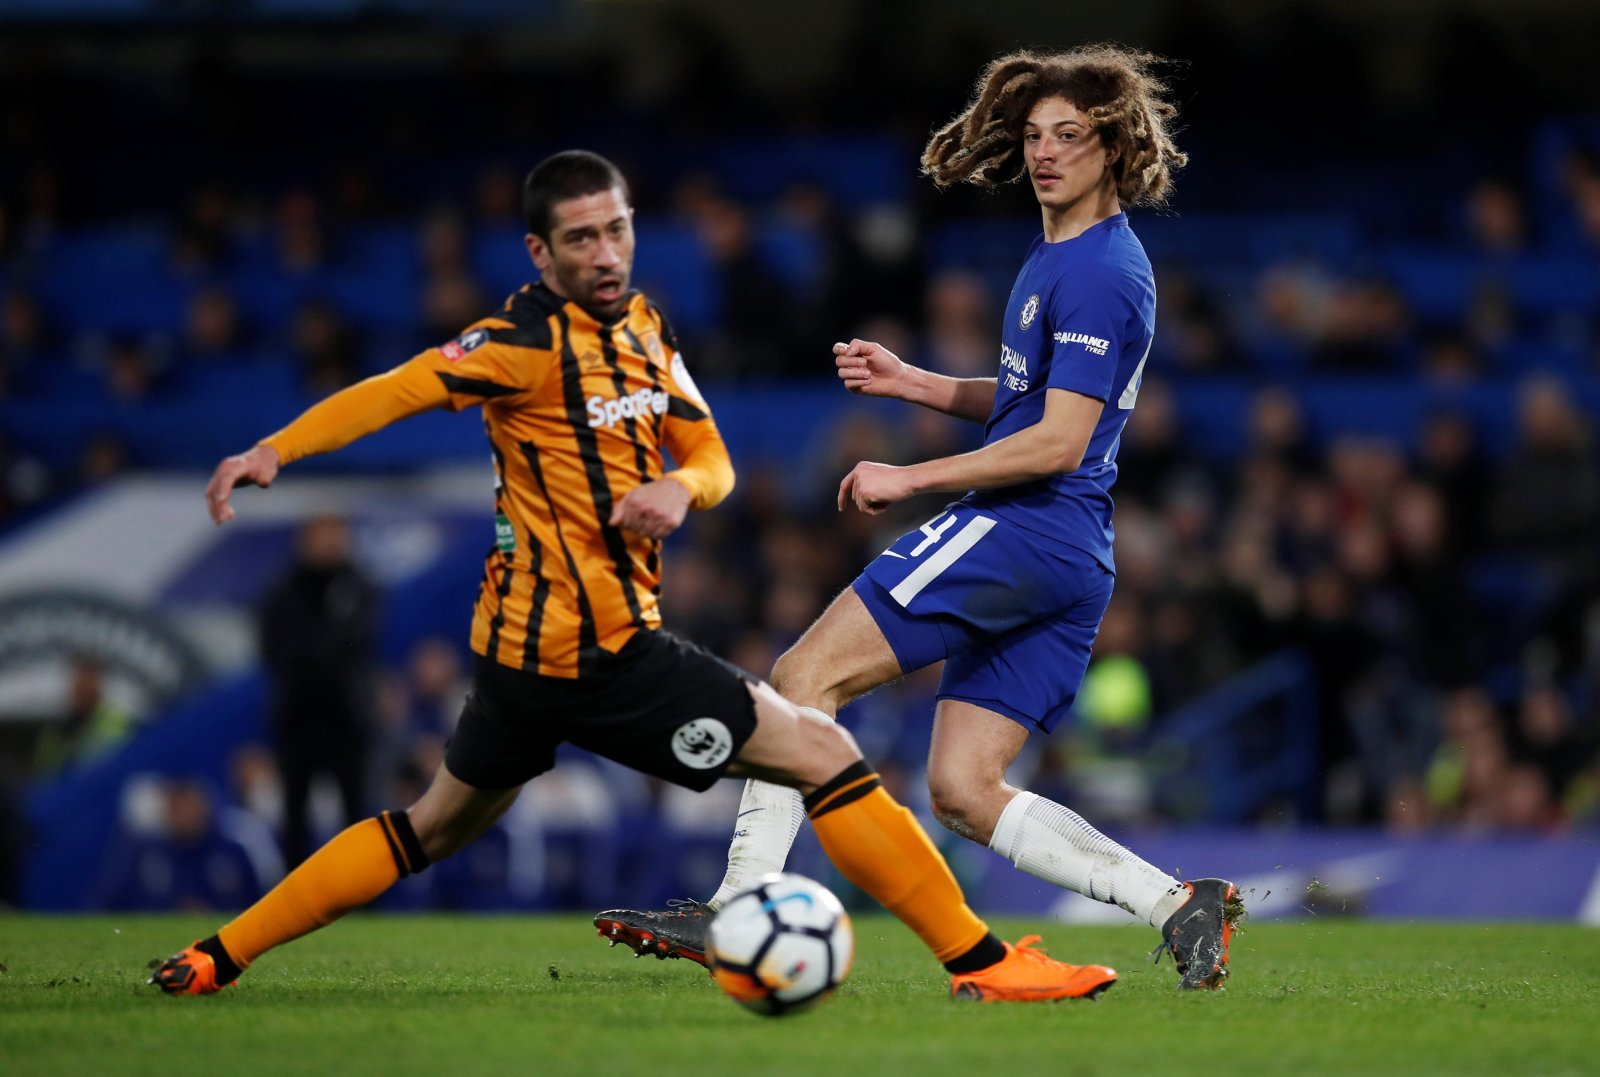 Stoke City should offer Ethan Ampadu chance to develop